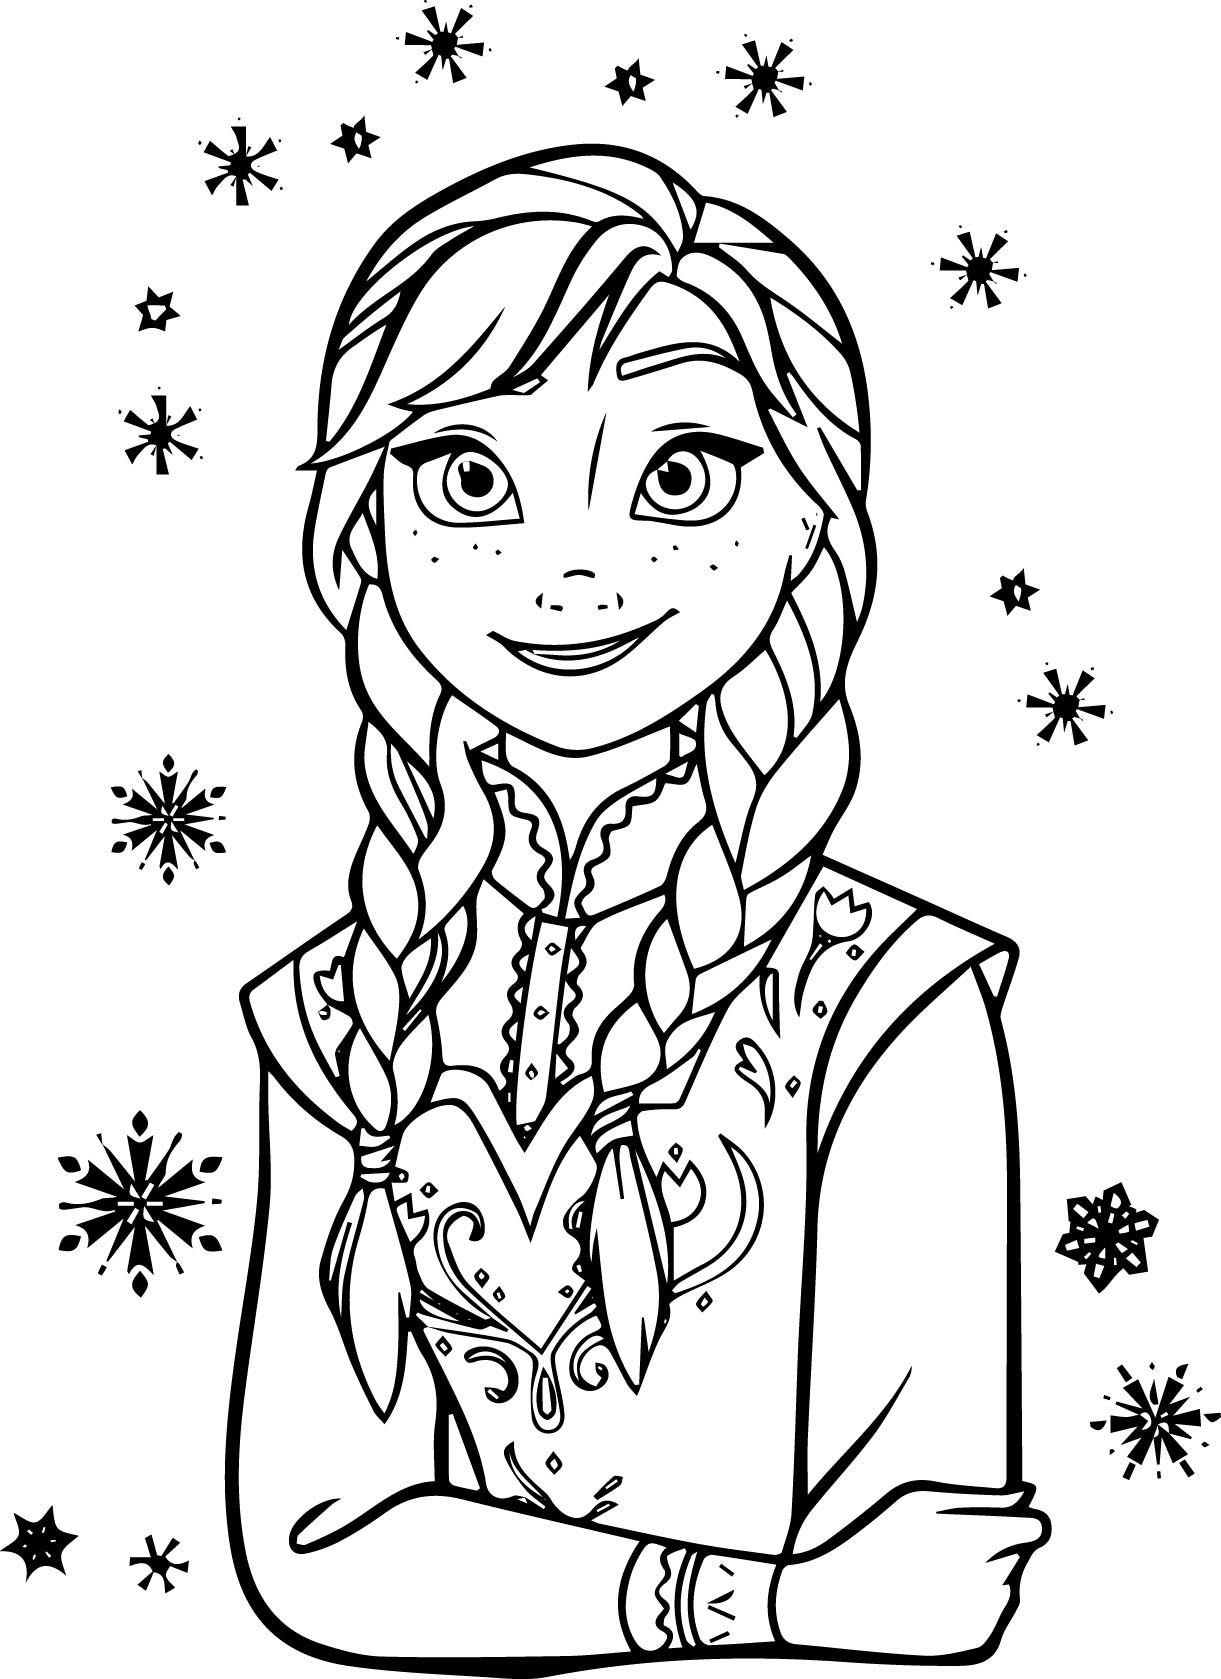 coloring sheets frozen 21 sites with frozen 2 coloring pages for free the moms buzz sheets coloring frozen